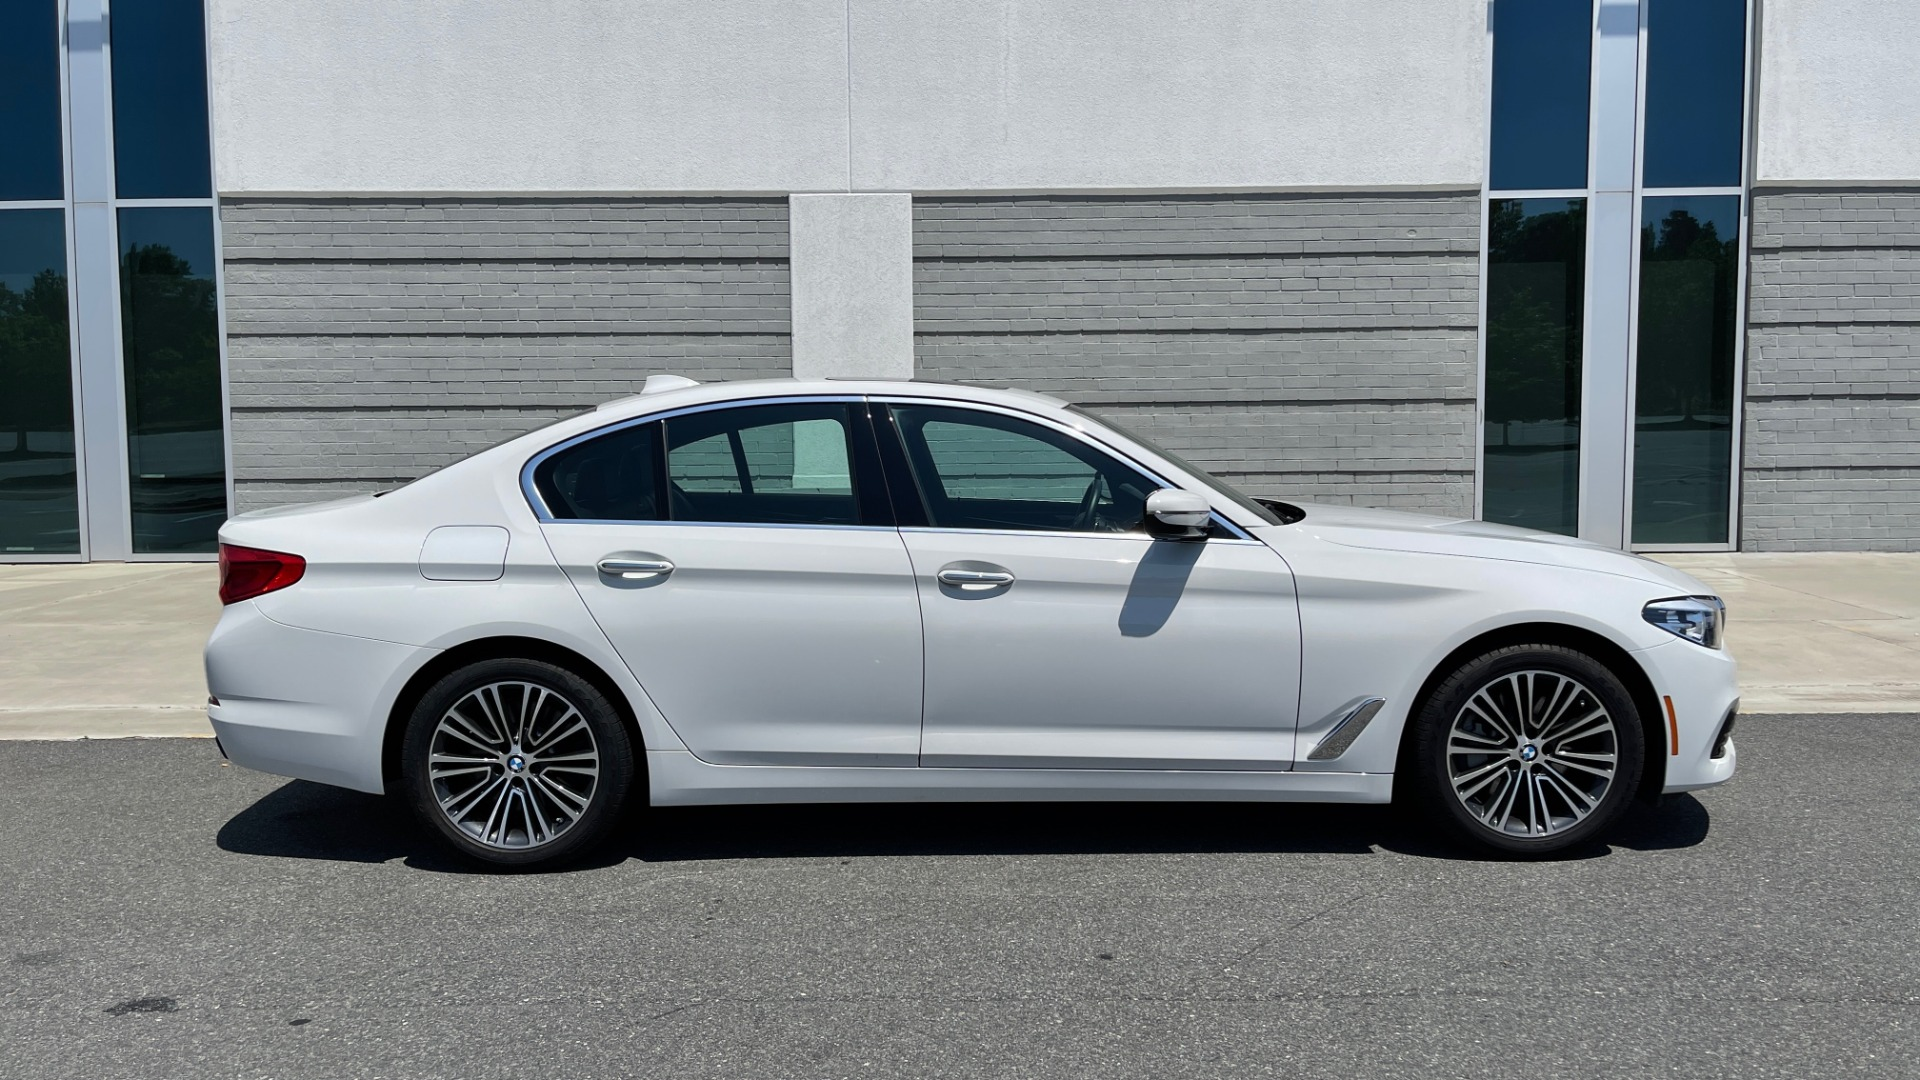 Used 2018 BMW 5 SERIES 540IXDRIVE PREMIUM / PARK ASSIST / KEYLESS ENTRY / SUNROOF / REARVIEW for sale $42,995 at Formula Imports in Charlotte NC 28227 6